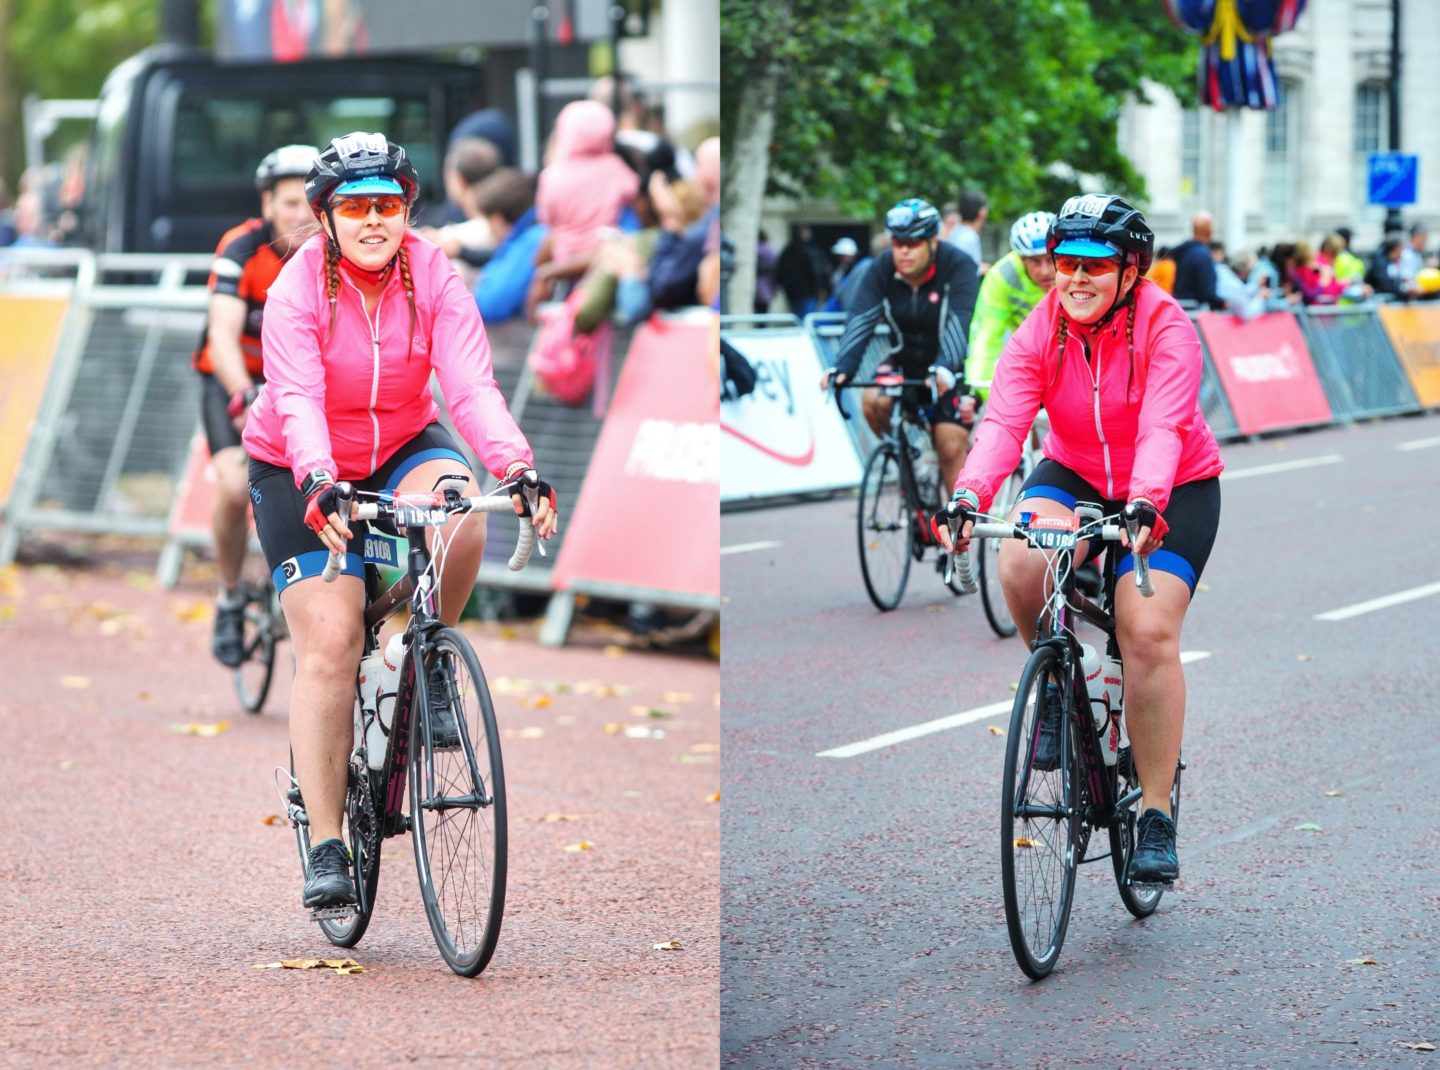 RideLondon 100 for the 3rd time